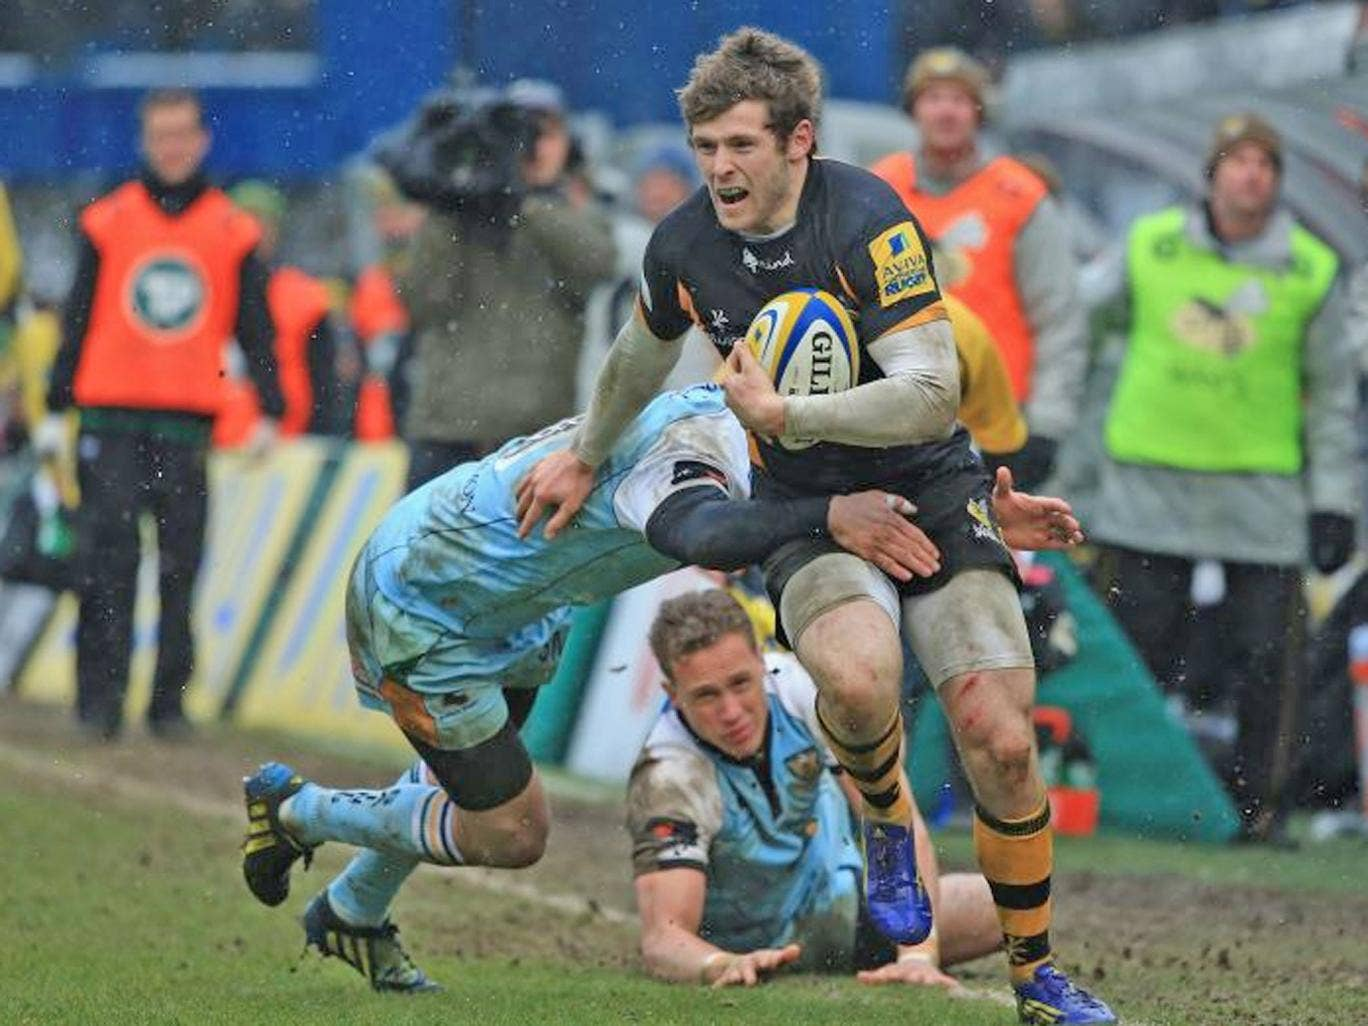 Elliot Daly evades a tackle on his way to scoring Wasps' second try